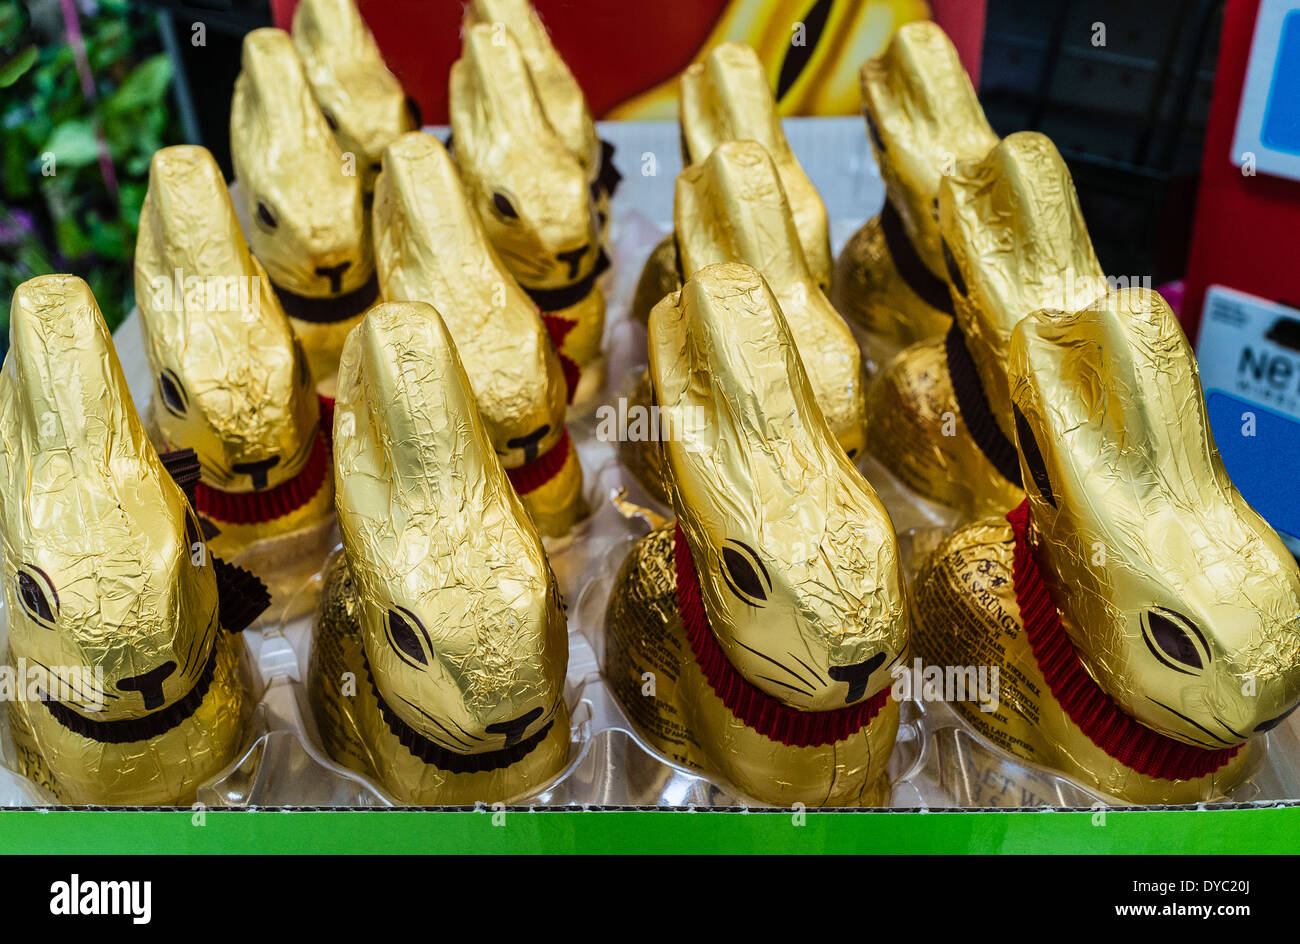 Gold foil wrapped chocolate Easter bunnies on display, for sale in a supermarket. - Stock Image